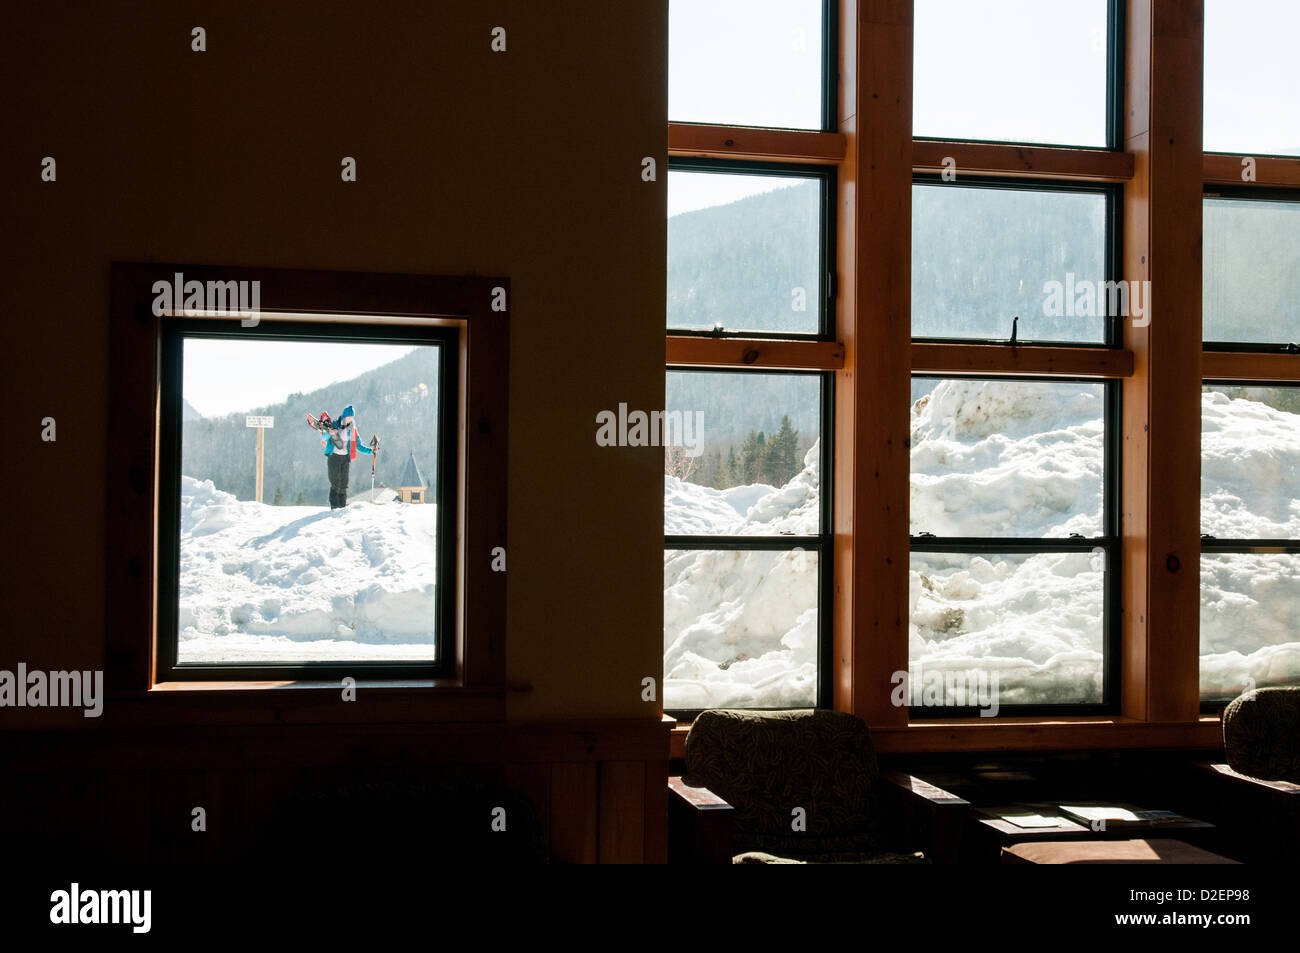 Woman outside the door of a lodge with snowshoes and lots of snow. - Stock Image